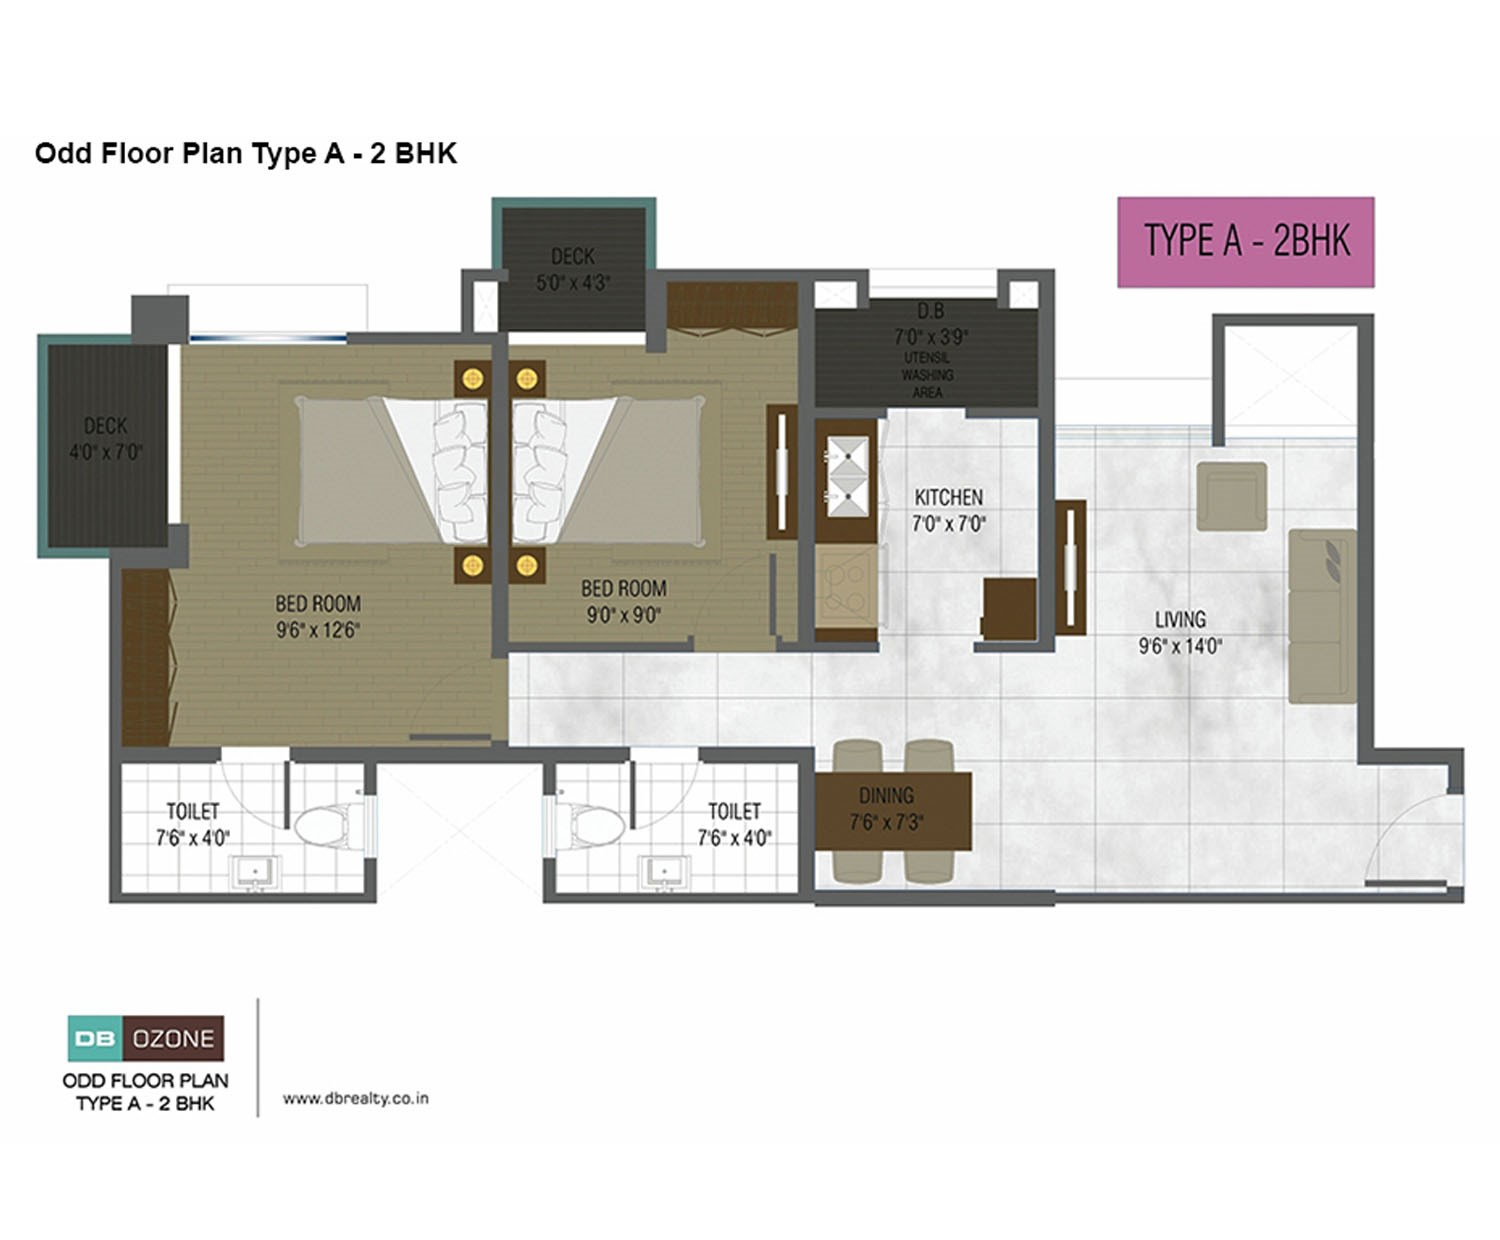 DB Ozone odd floor plan type A-2BHK